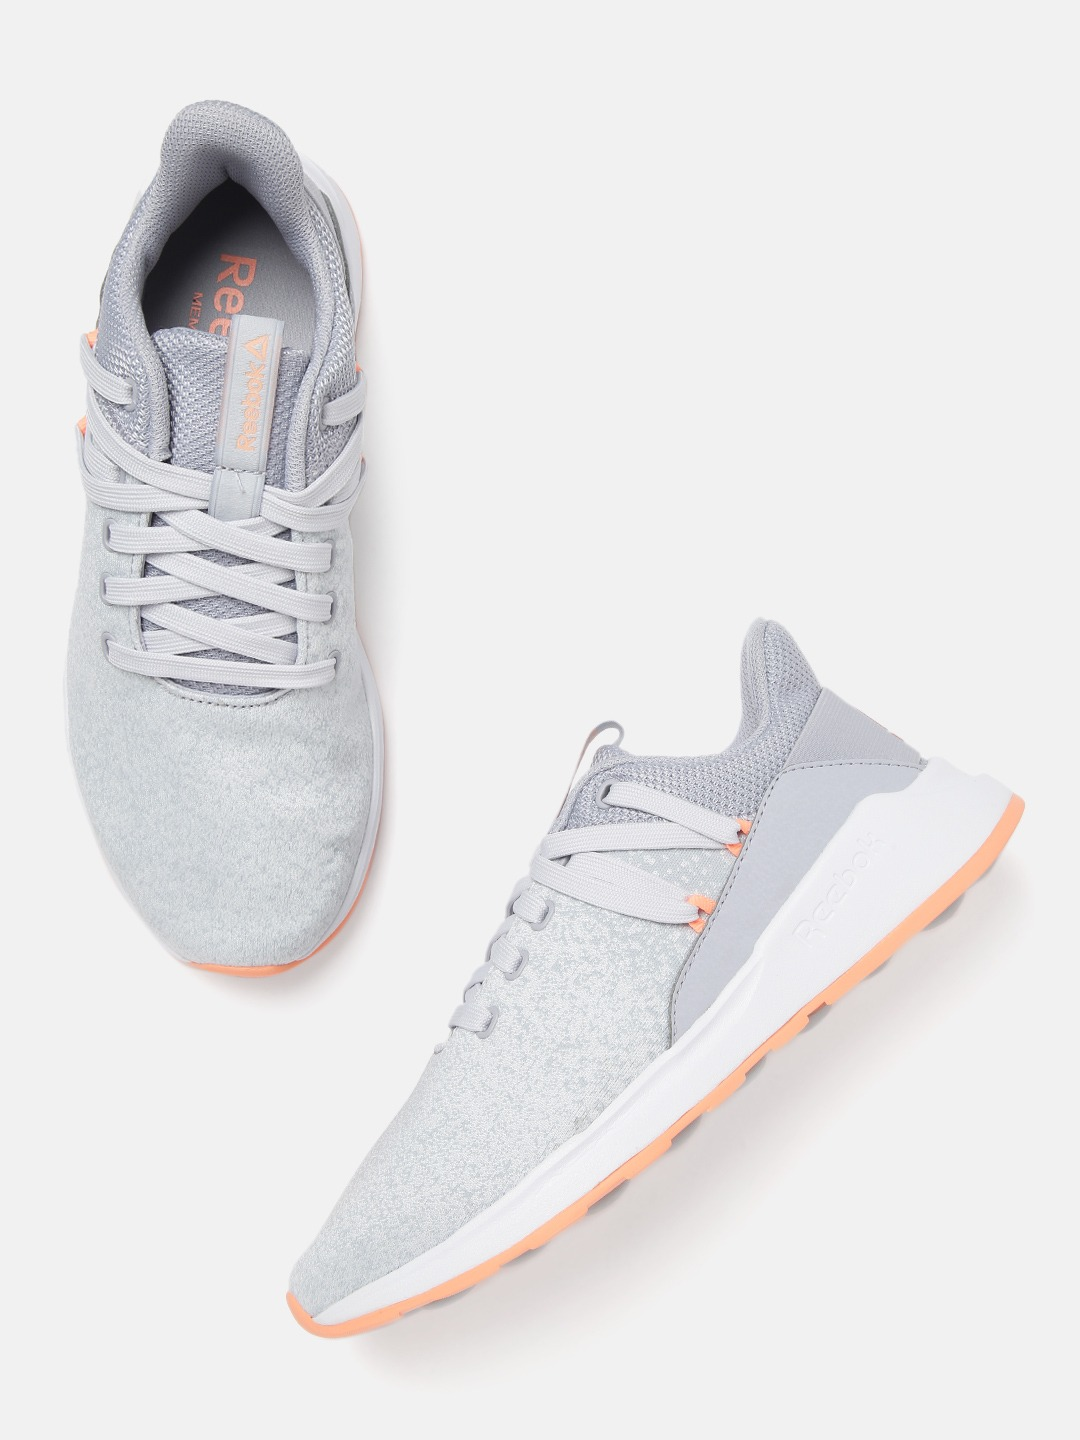 Grey Solid Ever Road DMX 2.0 Woven Design Walking Shoes